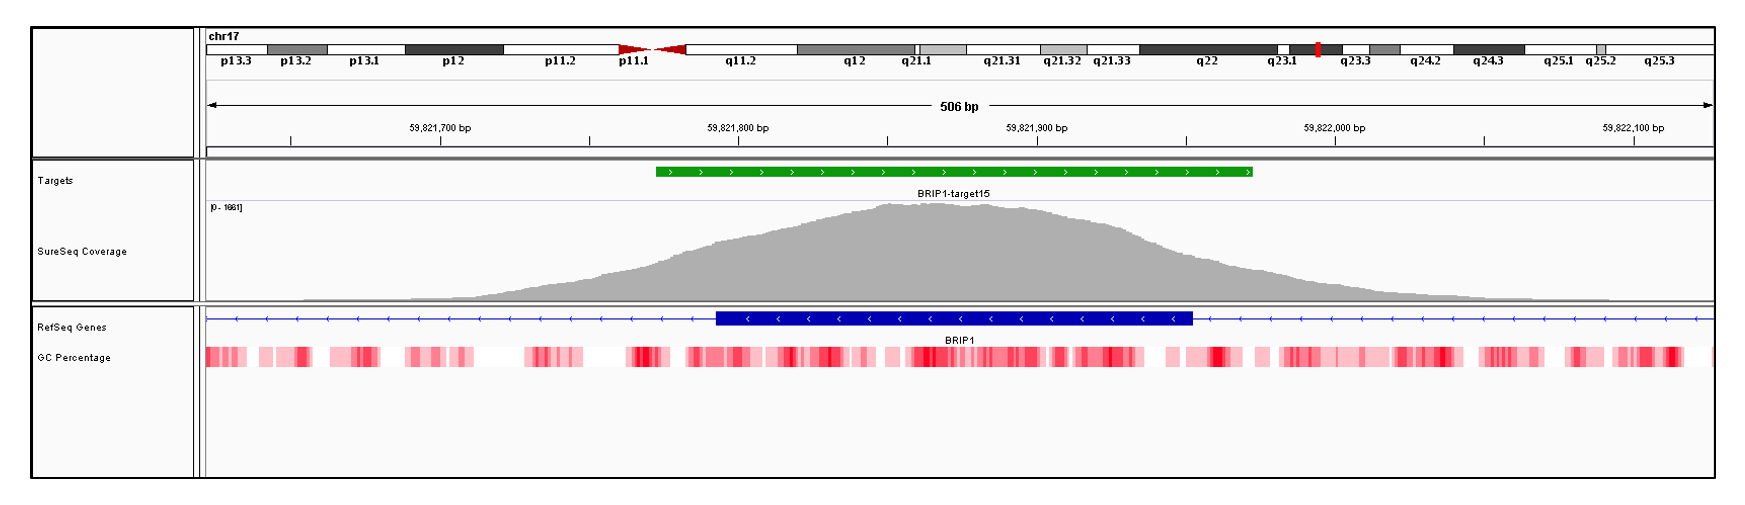 BRIP1 Exon 15 (hg19 chr17:59821793-59821952). Depth of coverage per base (grey). Targeted region (green). Gene coding region as defined by RefSeq (blue). GC percentage (red). Image